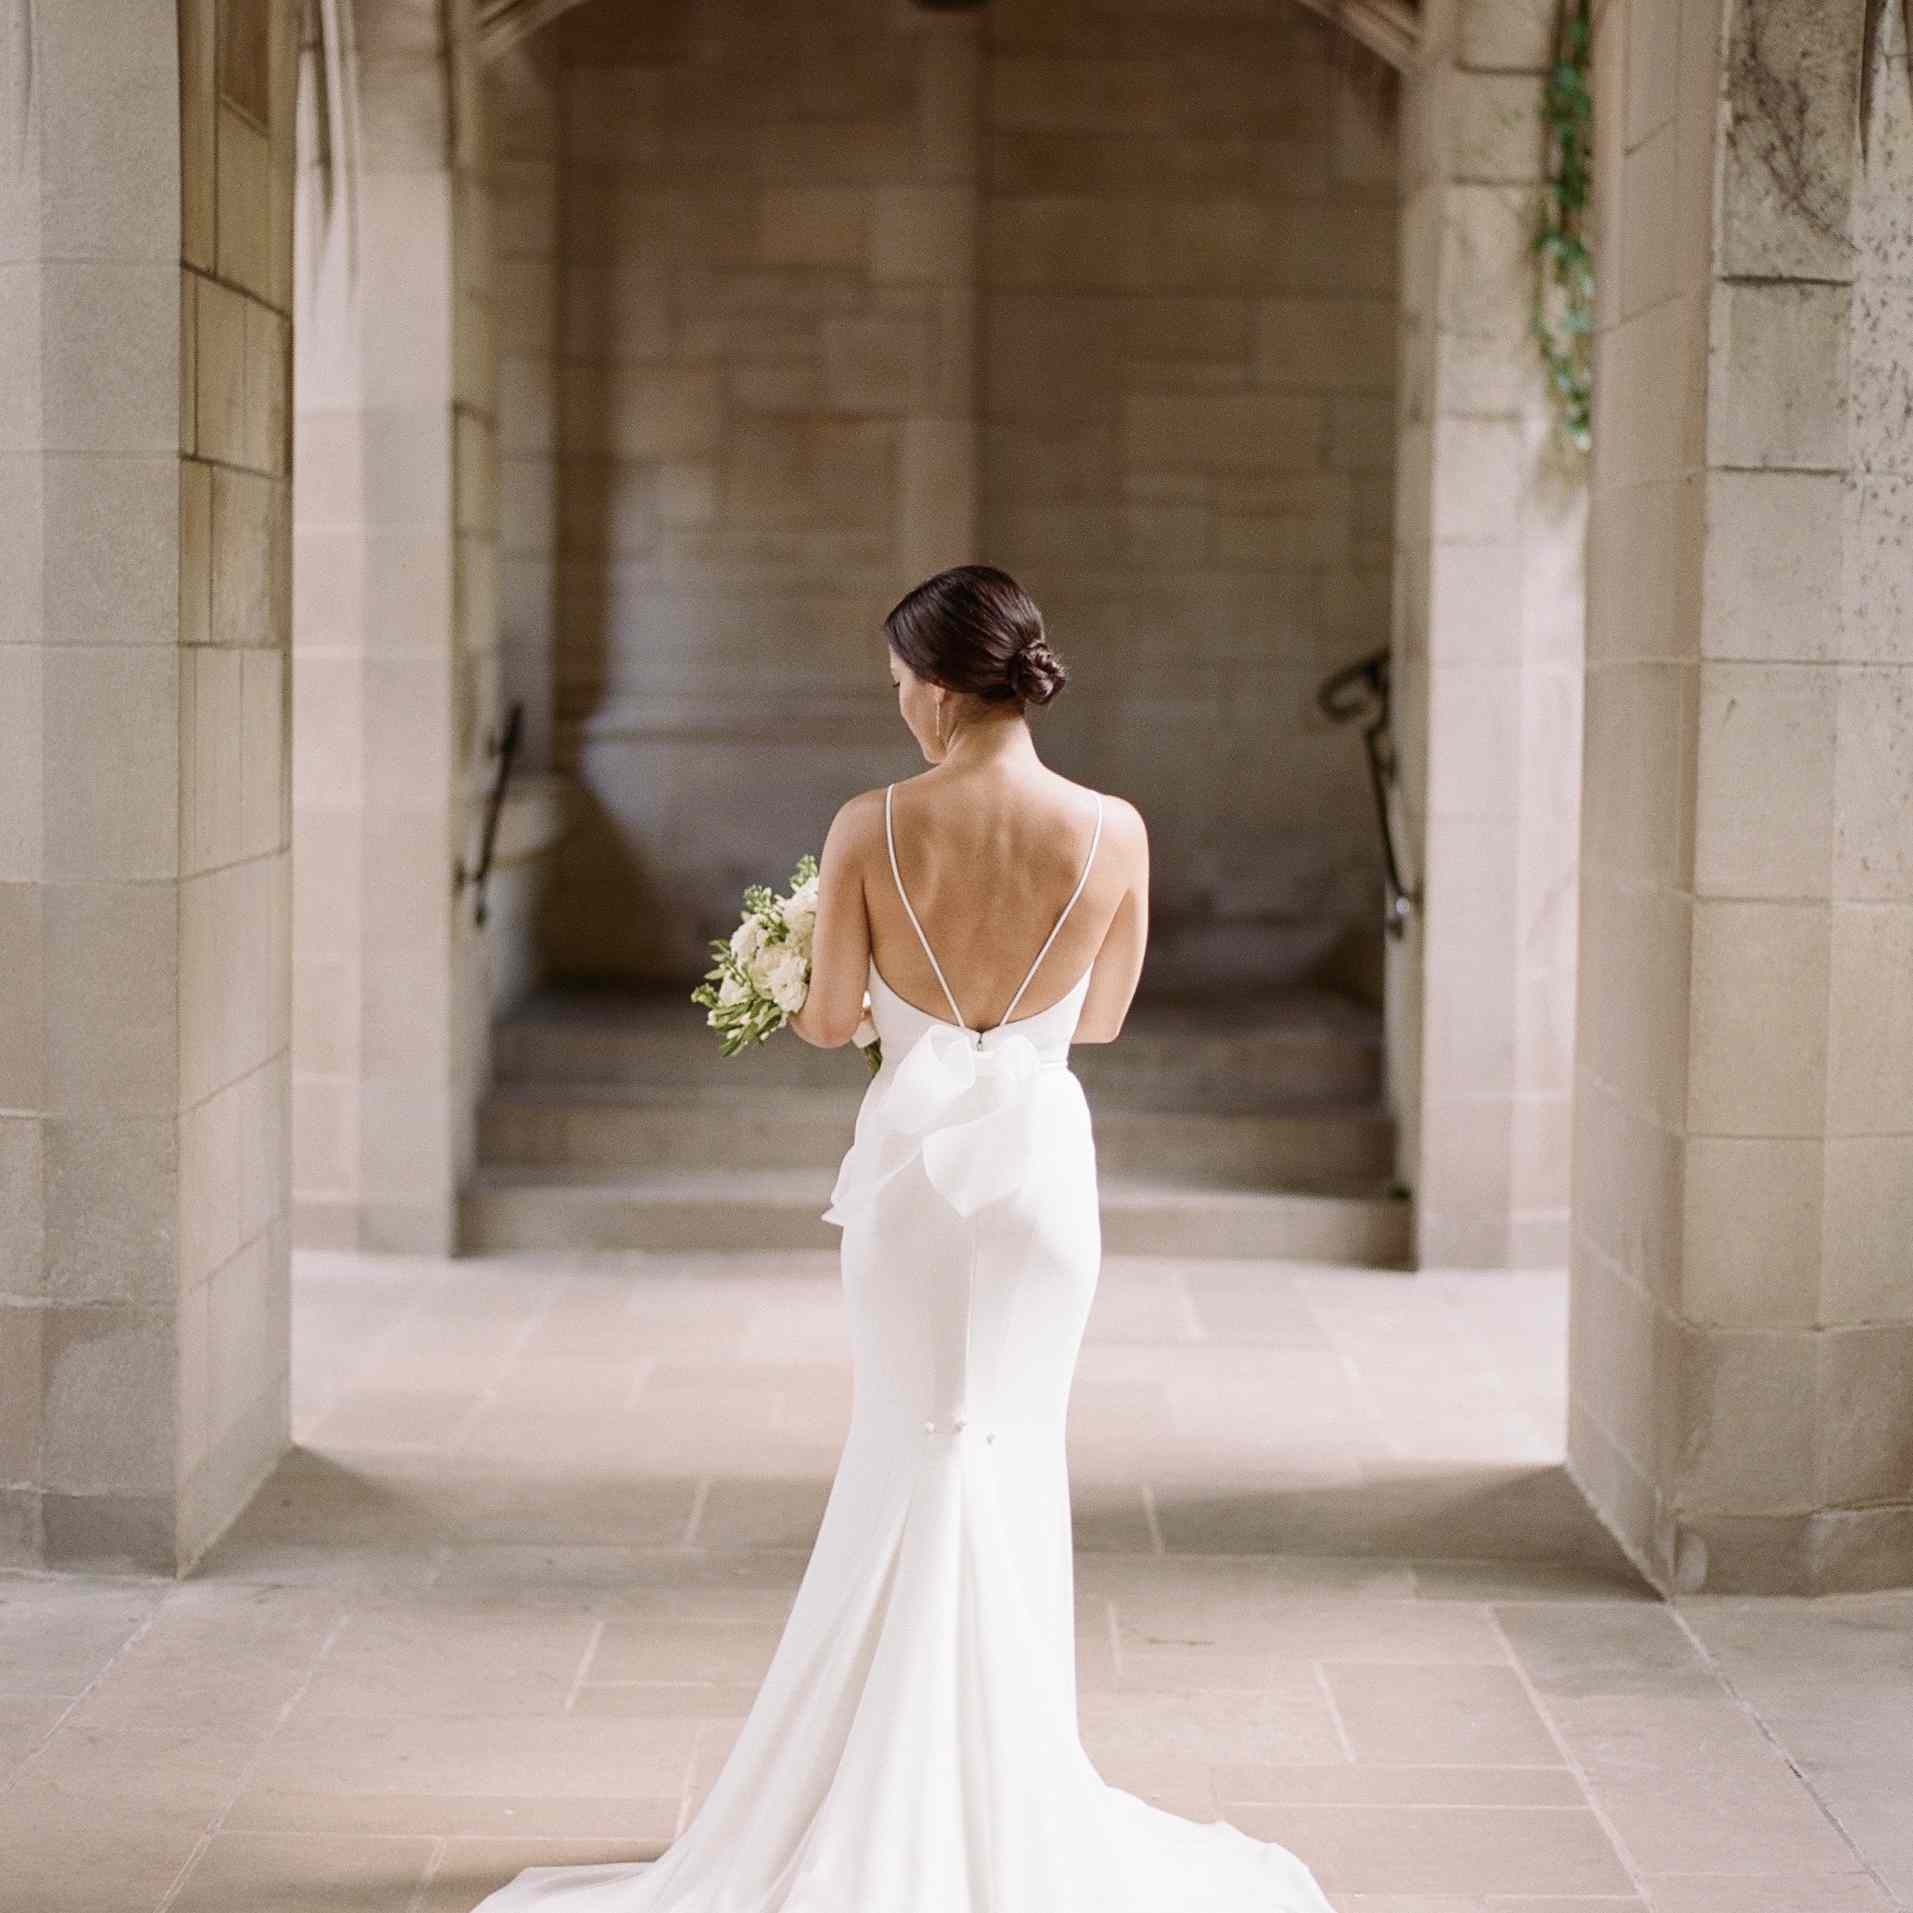 17 Real Brides Who Wore Swoon Worthy Backless Wedding Dresses,Beach Wedding Simple White Bridesmaid Dresses